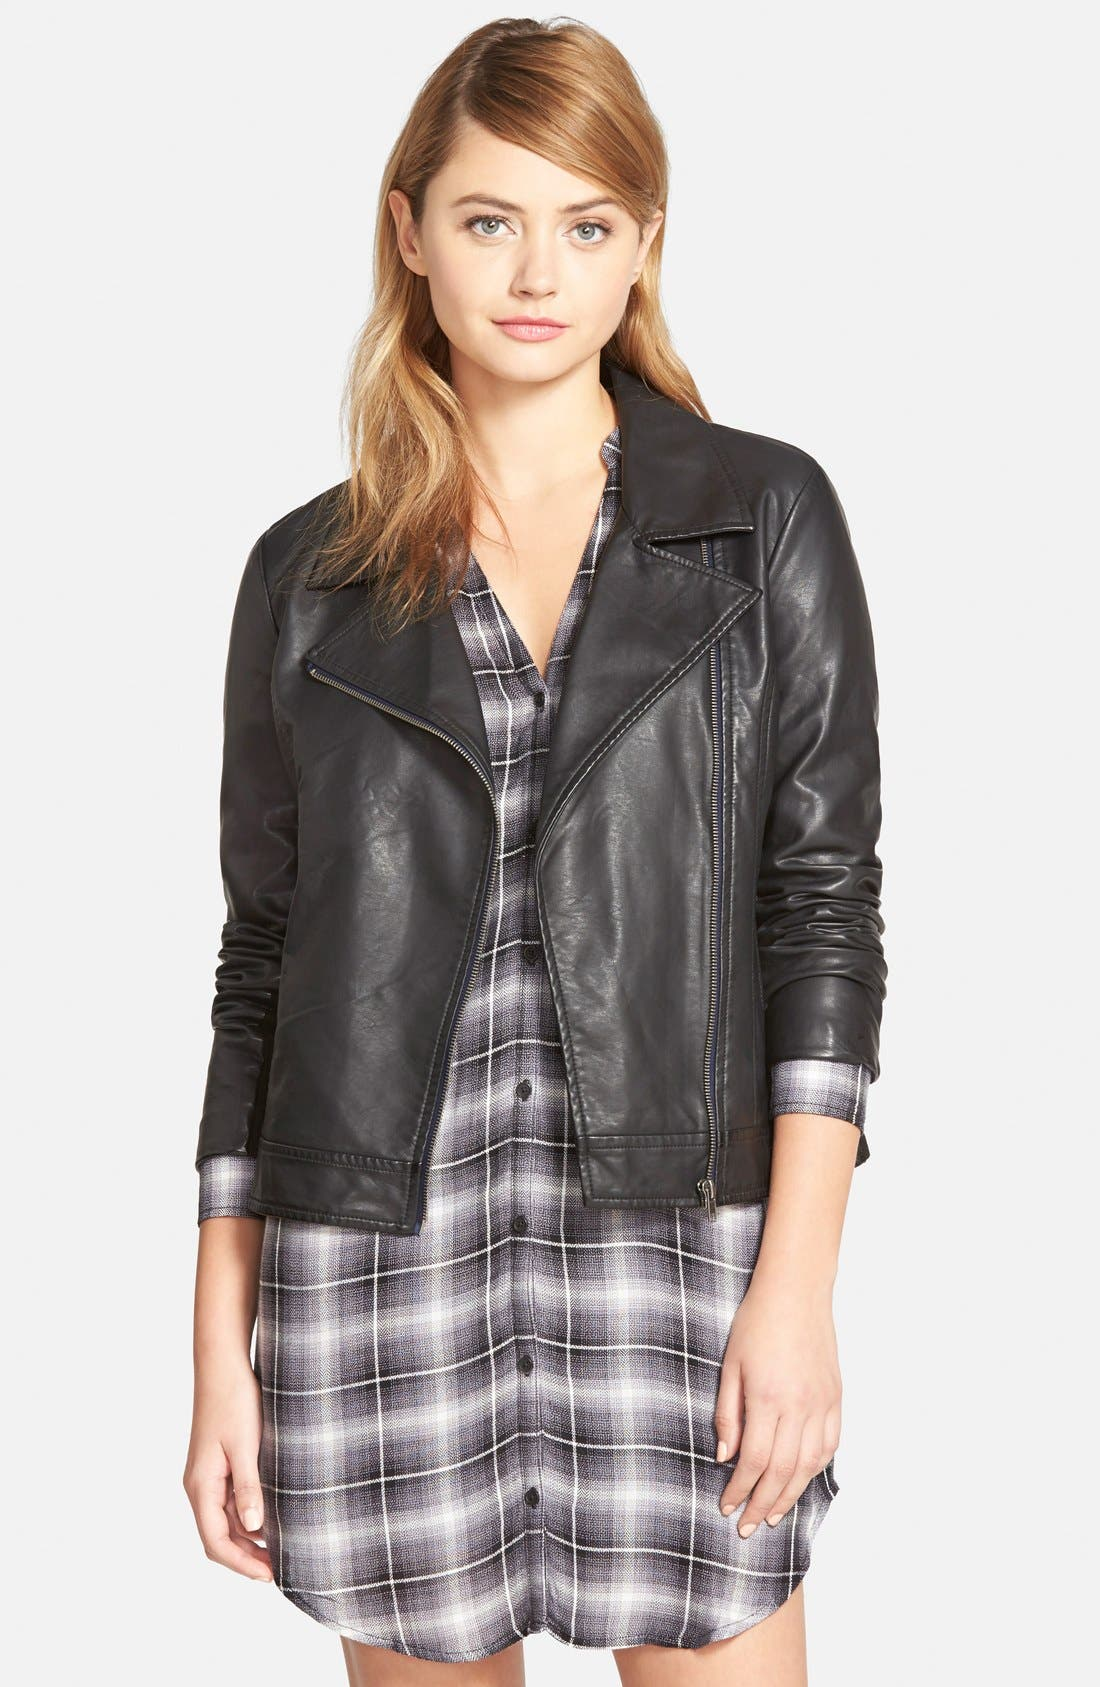 CUPCAKES AND CASHMERE 'Union' Faux Leather Biker Jacket, Main, color, 001